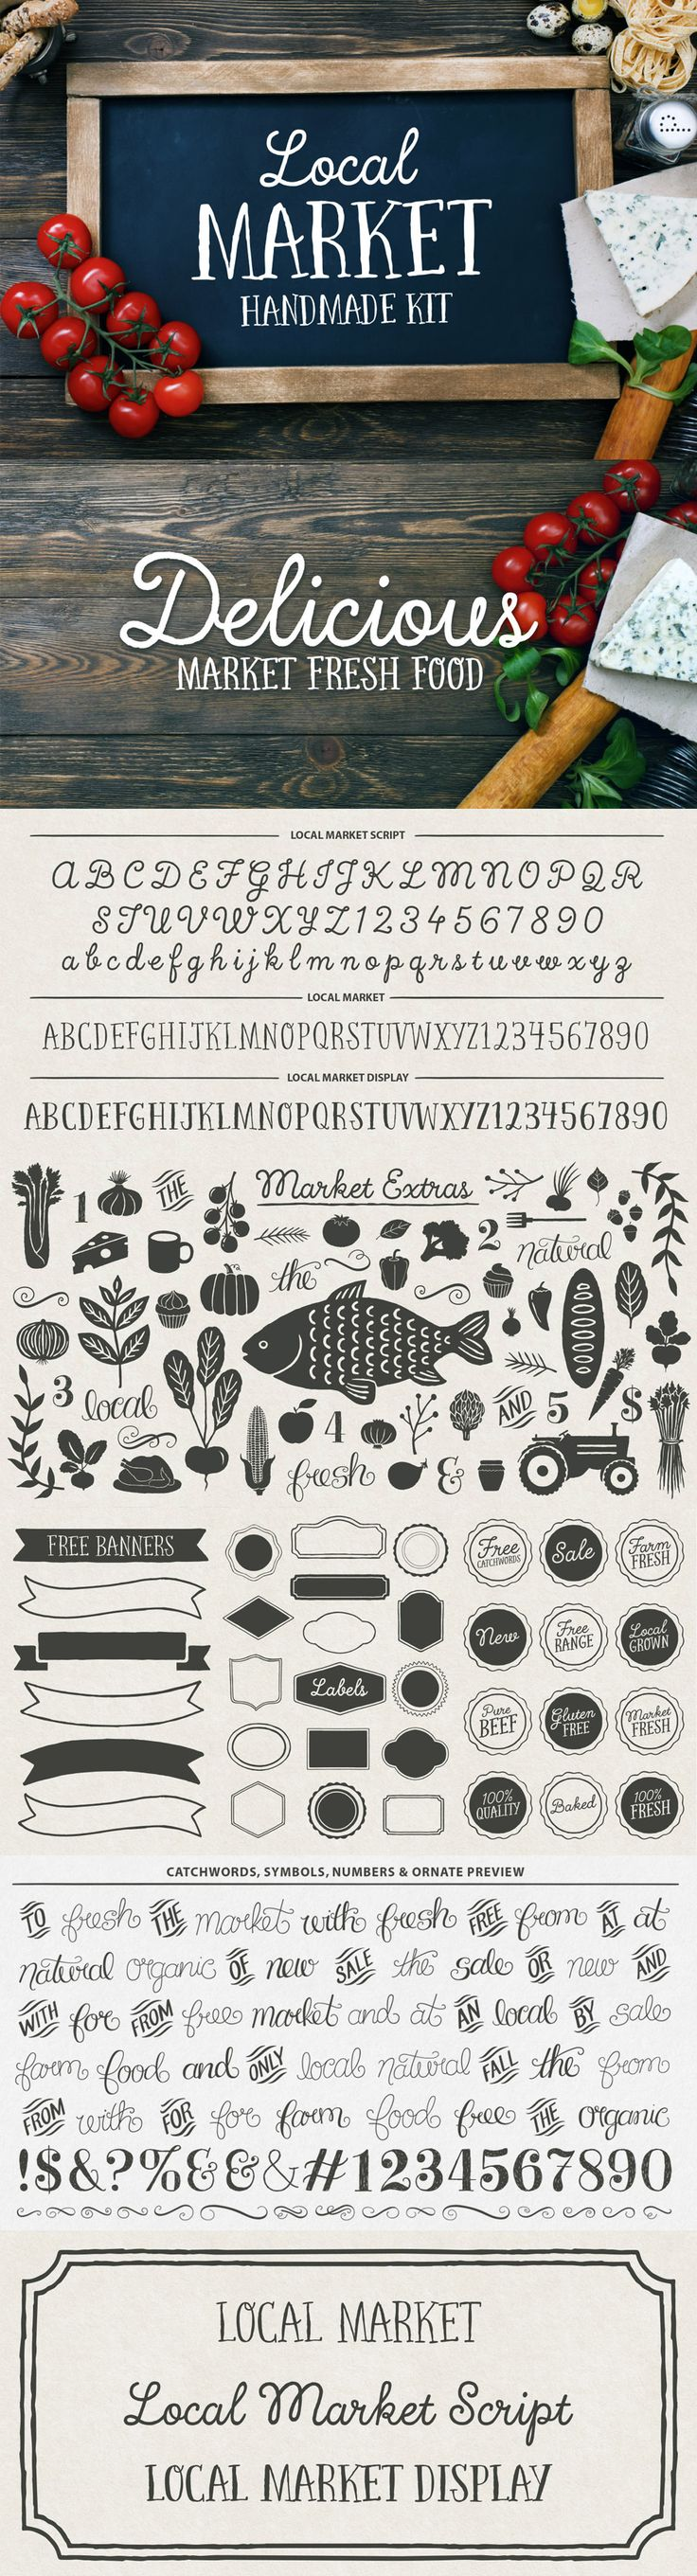 22 Best Selling Gorgeous Fonts (With Web Fonts and Extended Licensing) Just $29